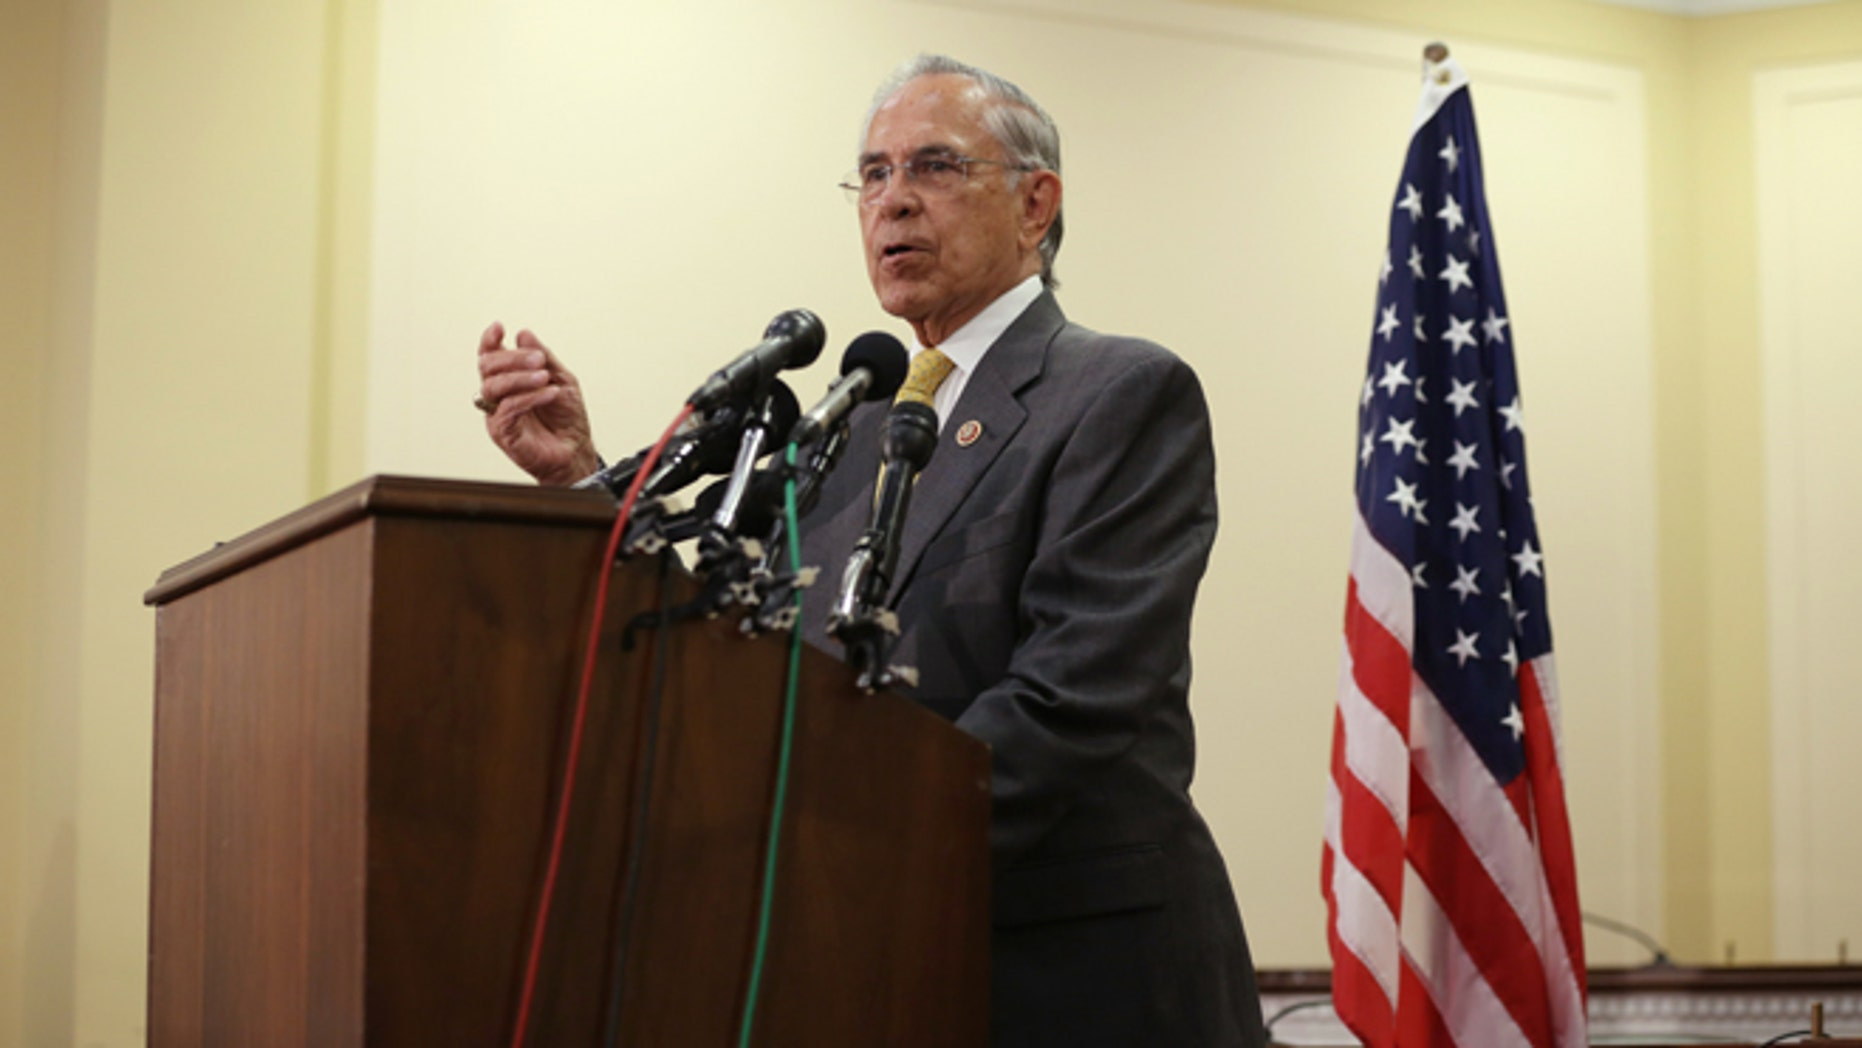 U.S. Rep. Rubén Hinojosa during a news conference July 11, 2014 on Capitol Hill.